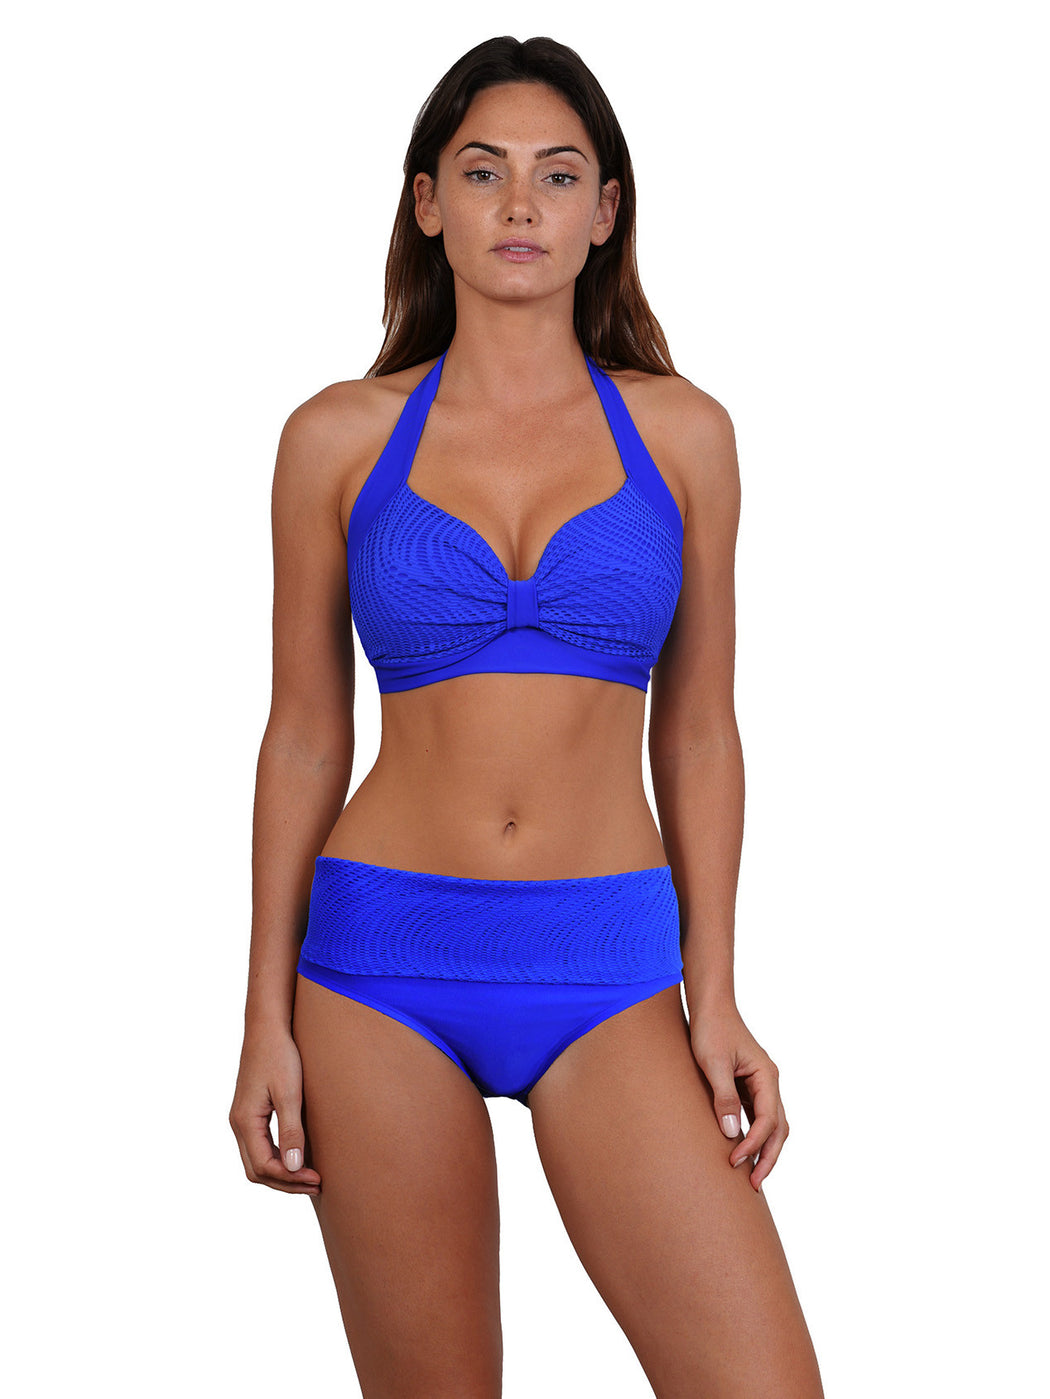 Lapis colour Finch Swim bikini top with tie neck/back removable cups